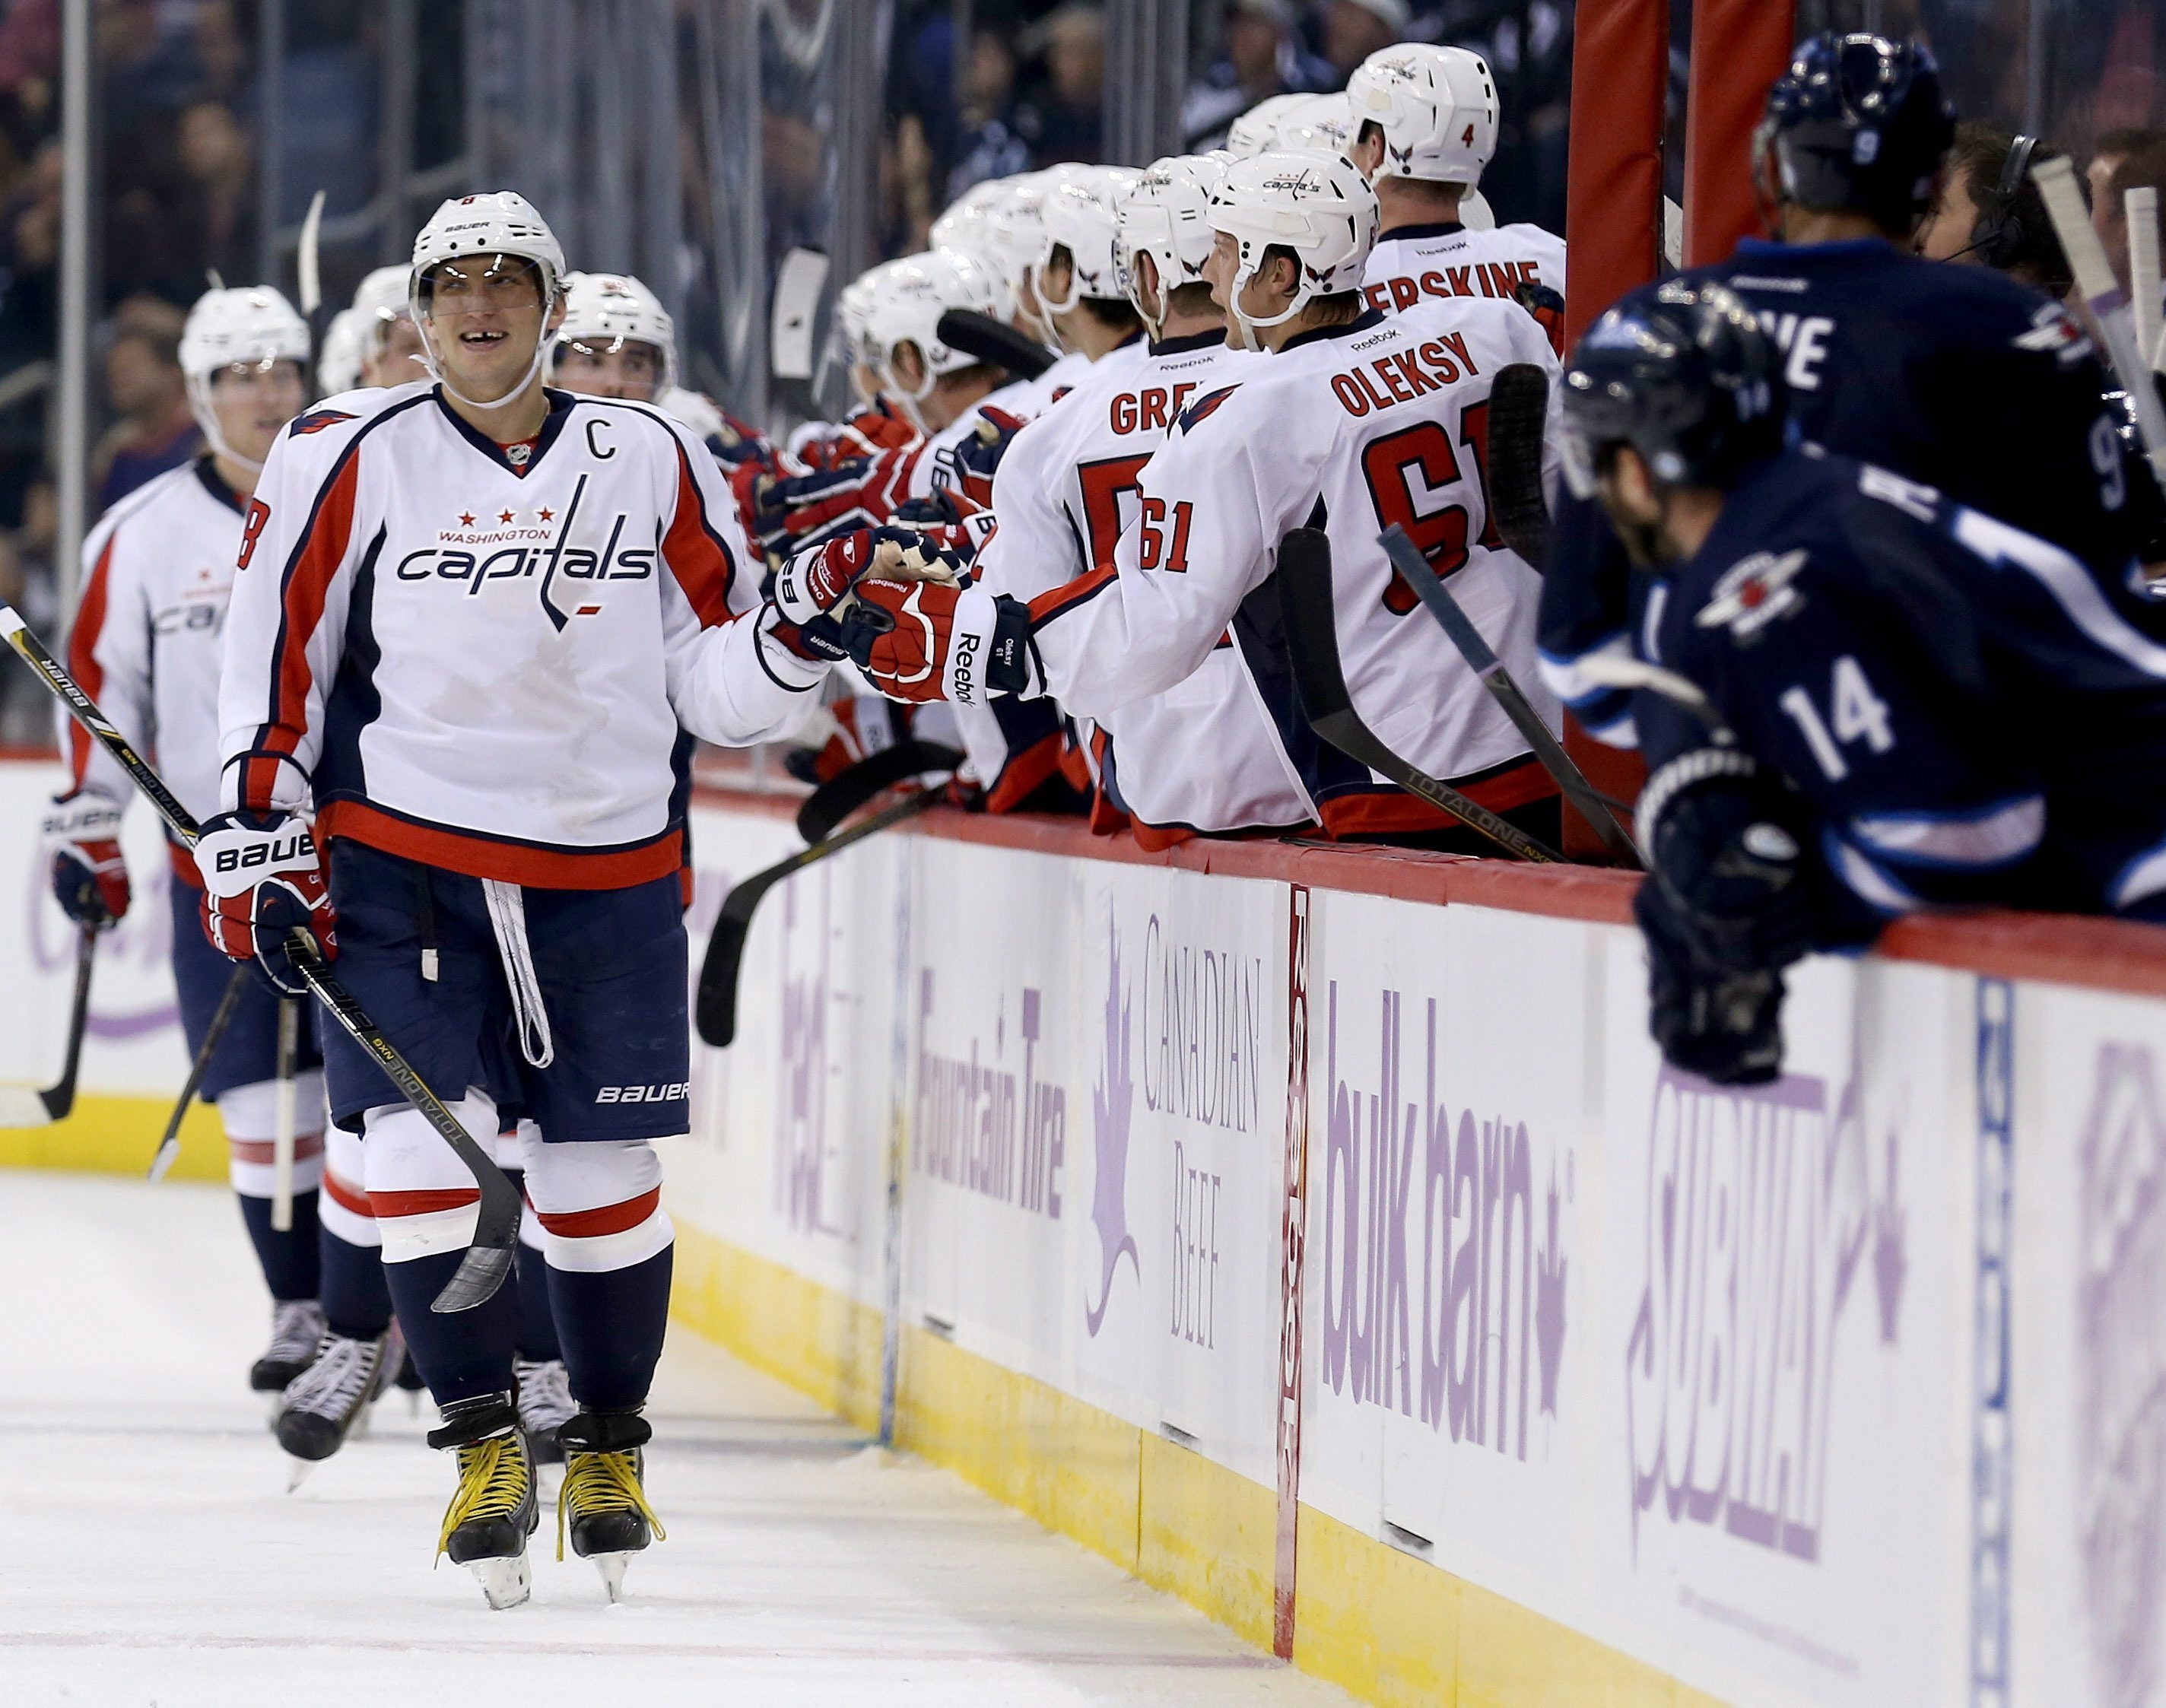 Alex Ovechkin has scored 10 goals in the opening 10 games for the Washington Capitals. (AP Photo/The Canadian Press, Trevor Hagan)